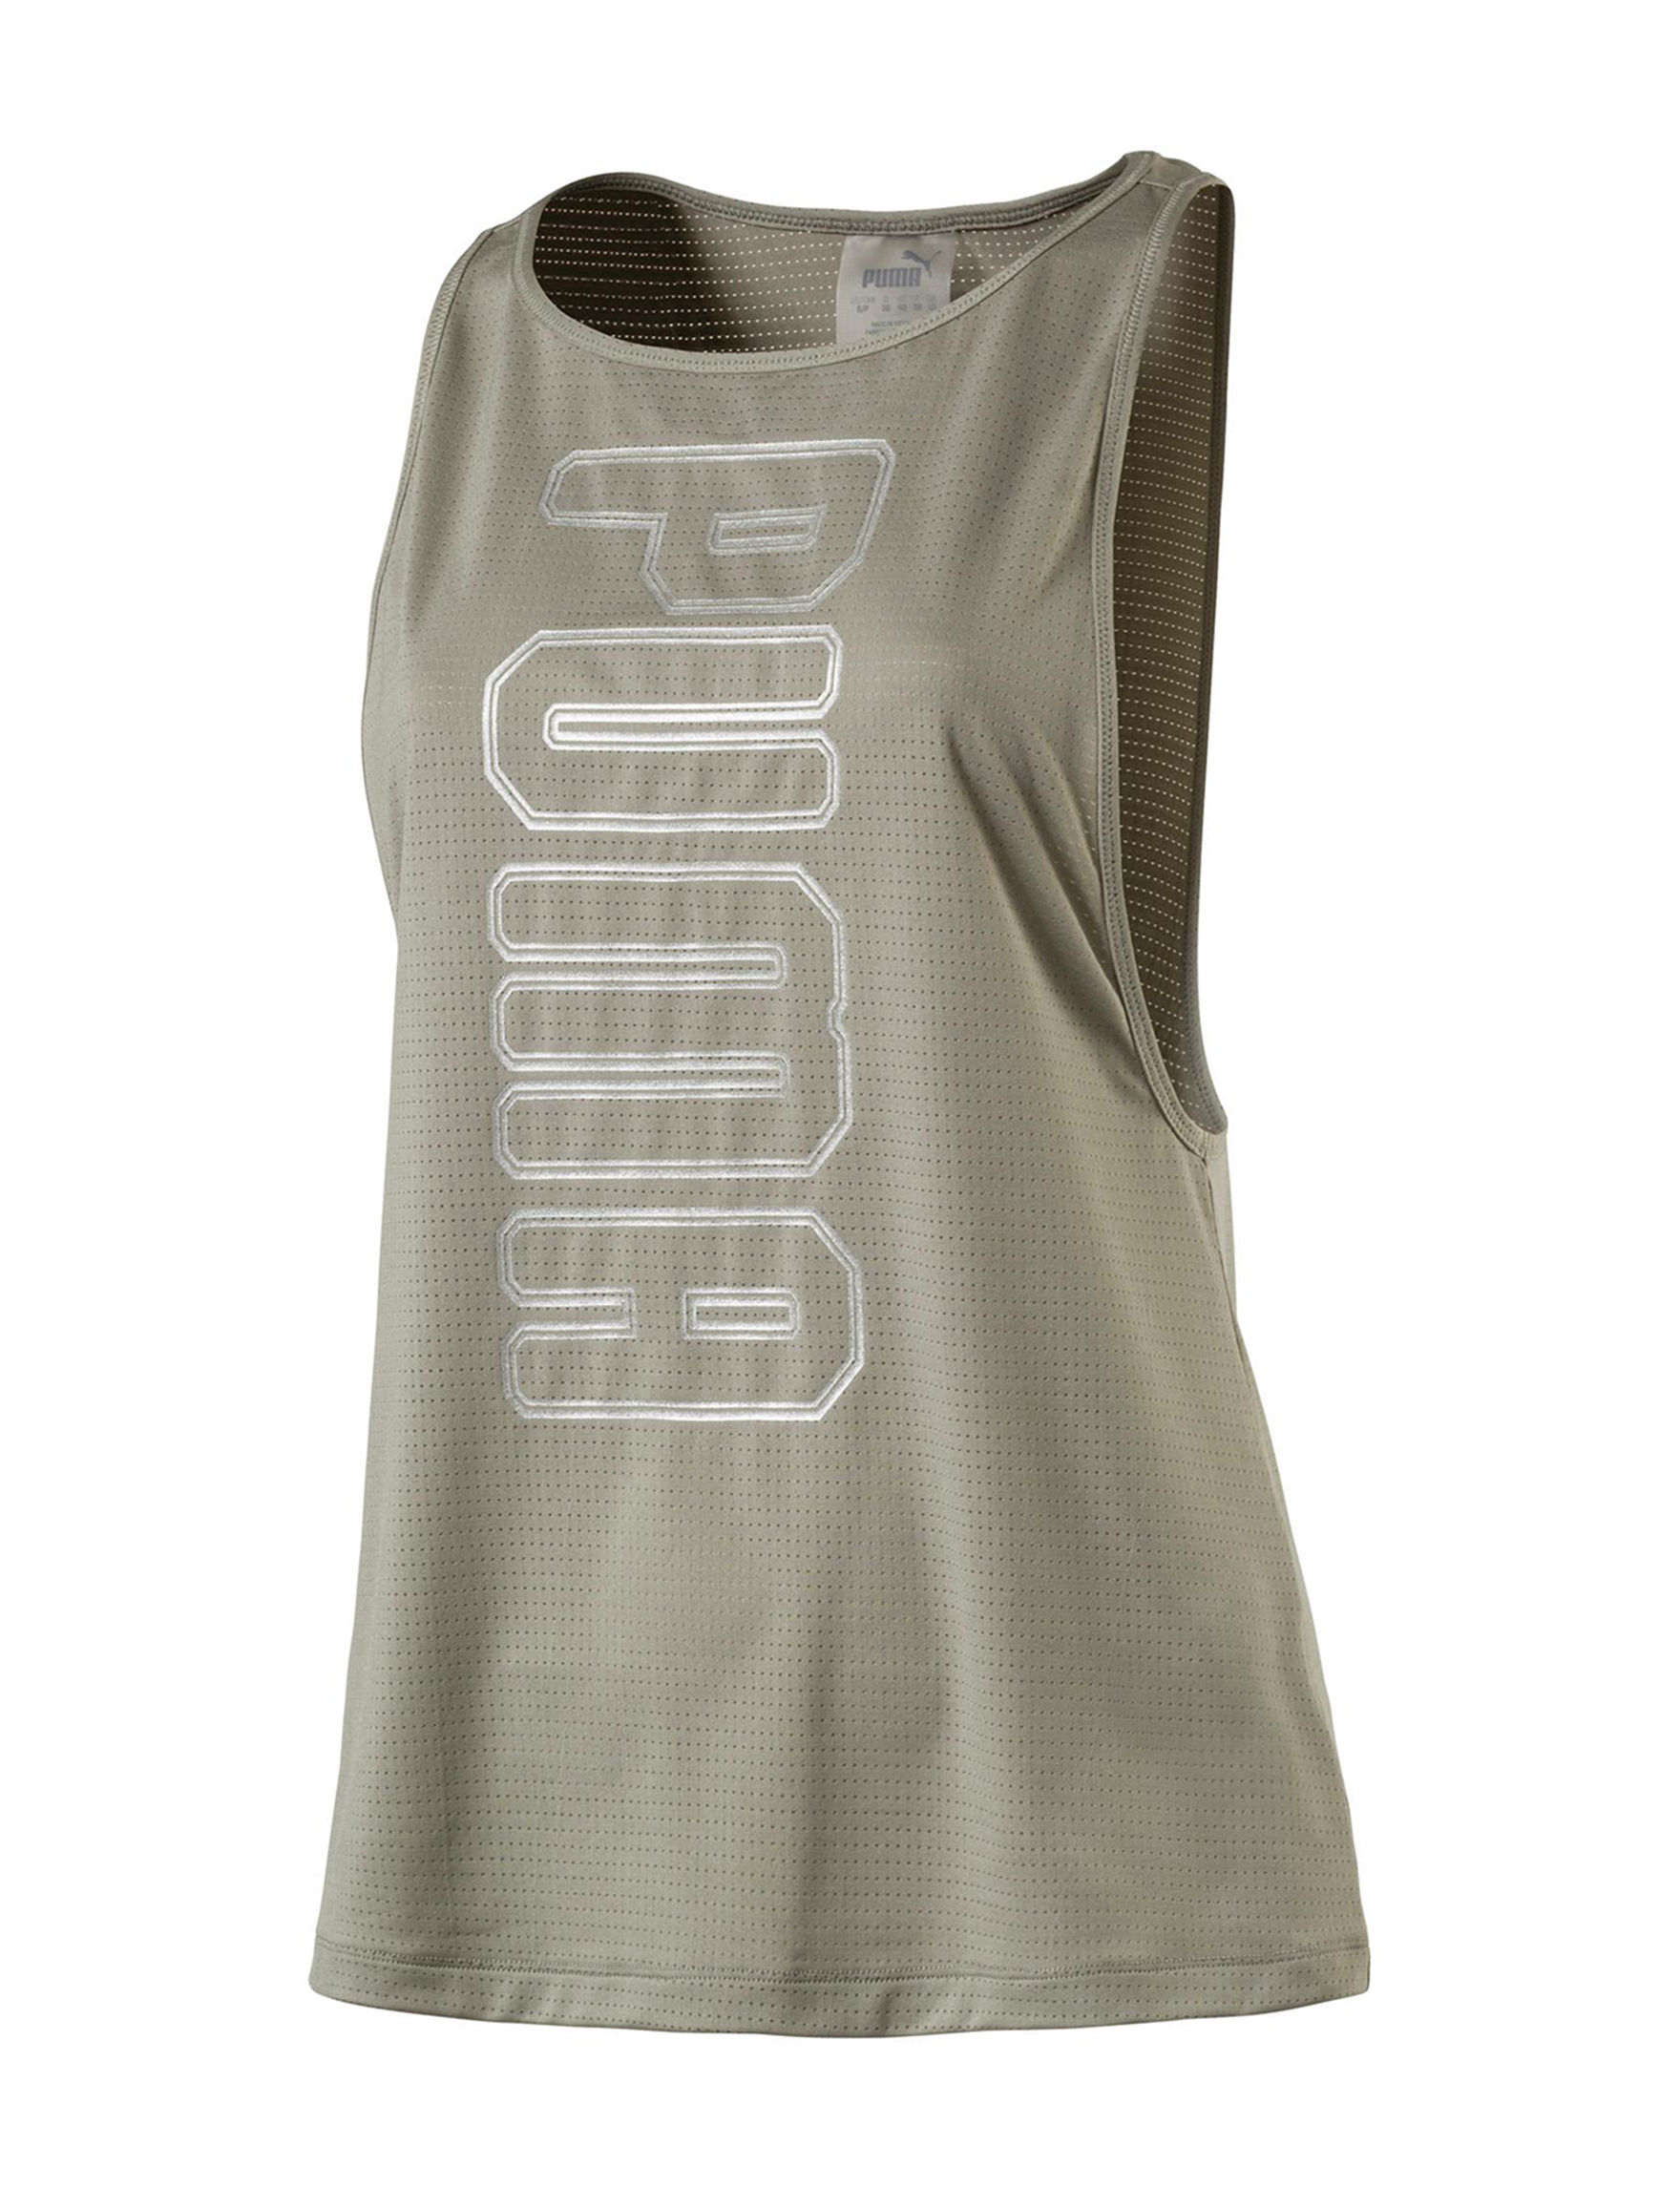 Puma Olive Leggings Tees & Tanks